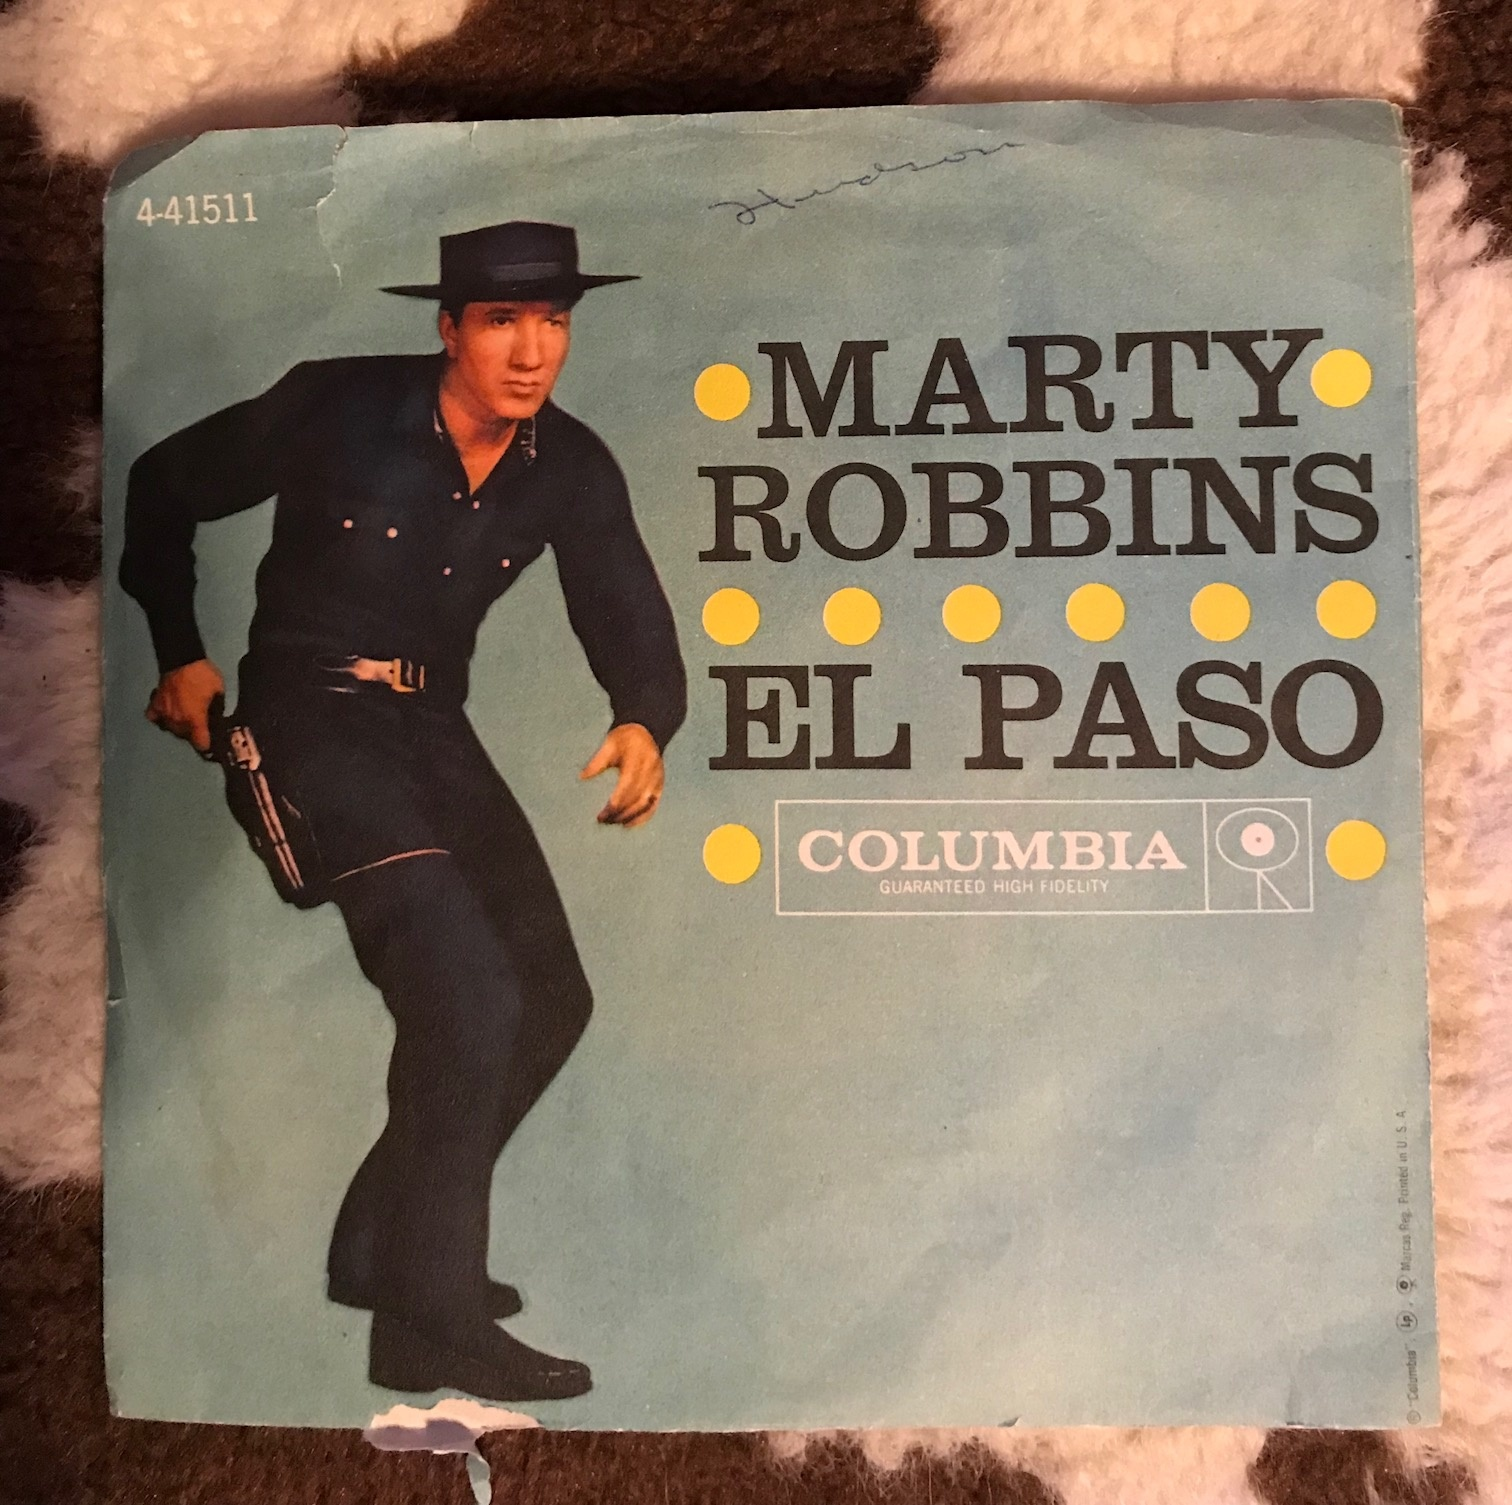 Image result for marty robbins el paso single images